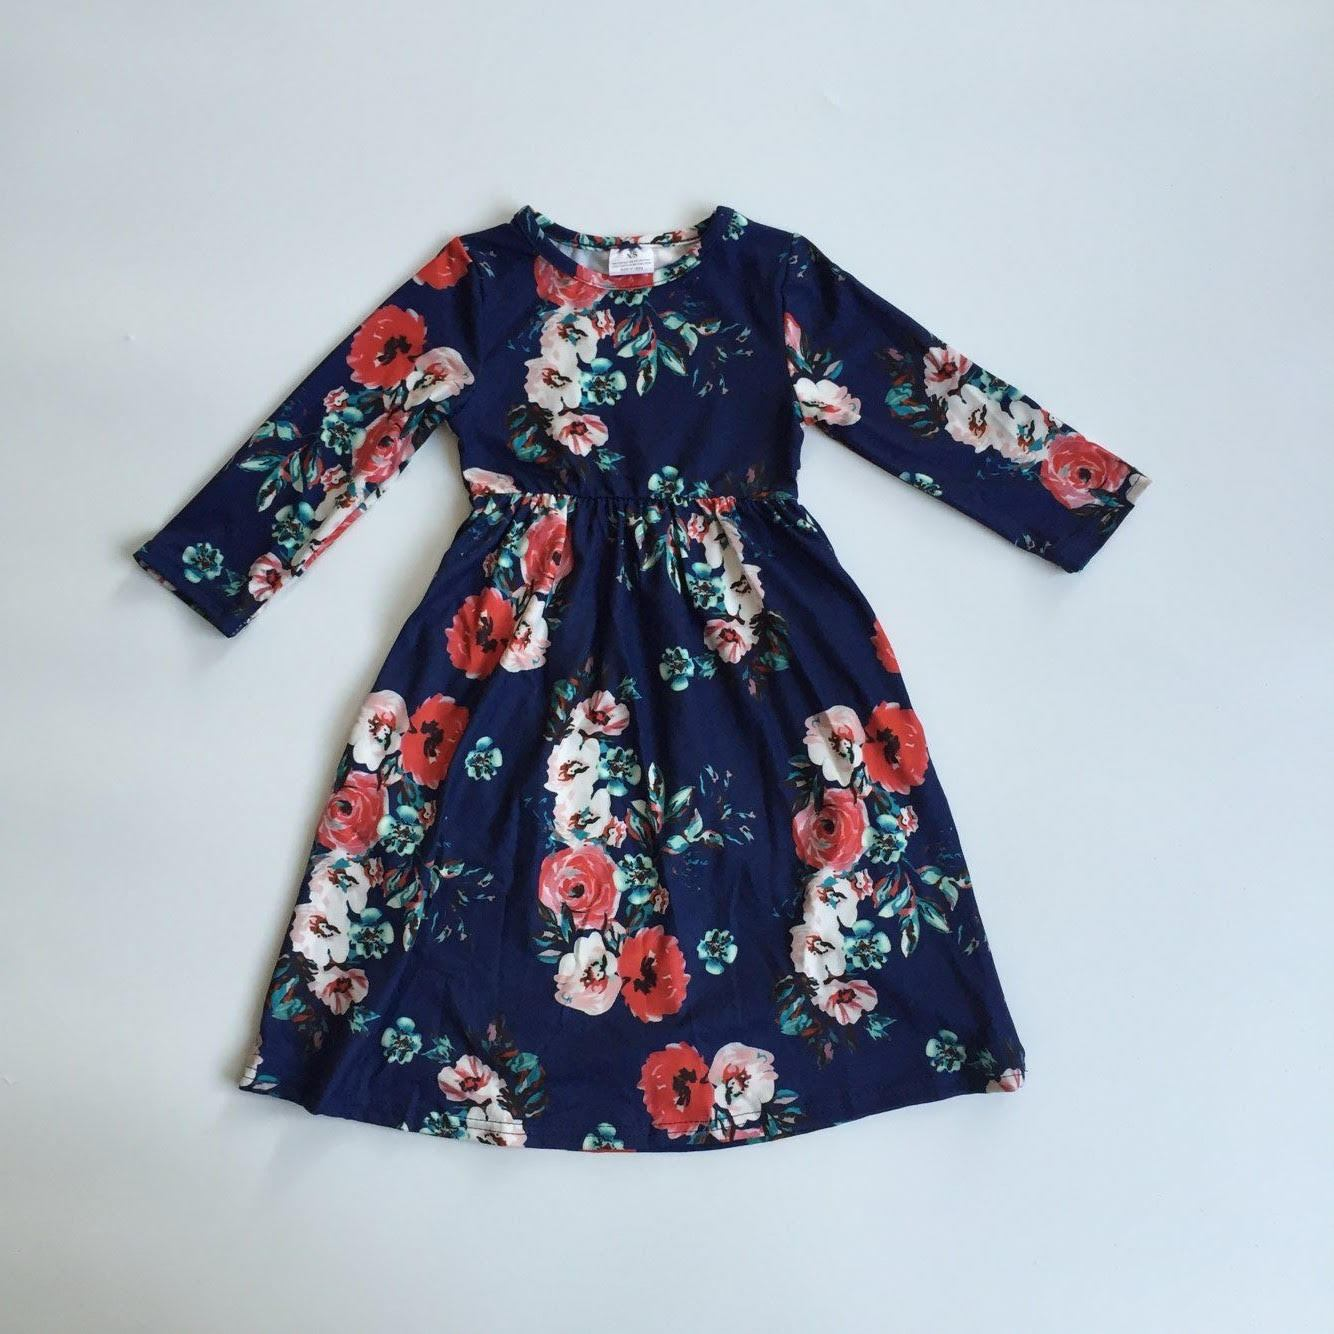 Mommy and Me Floral Dress - Navy (Child)